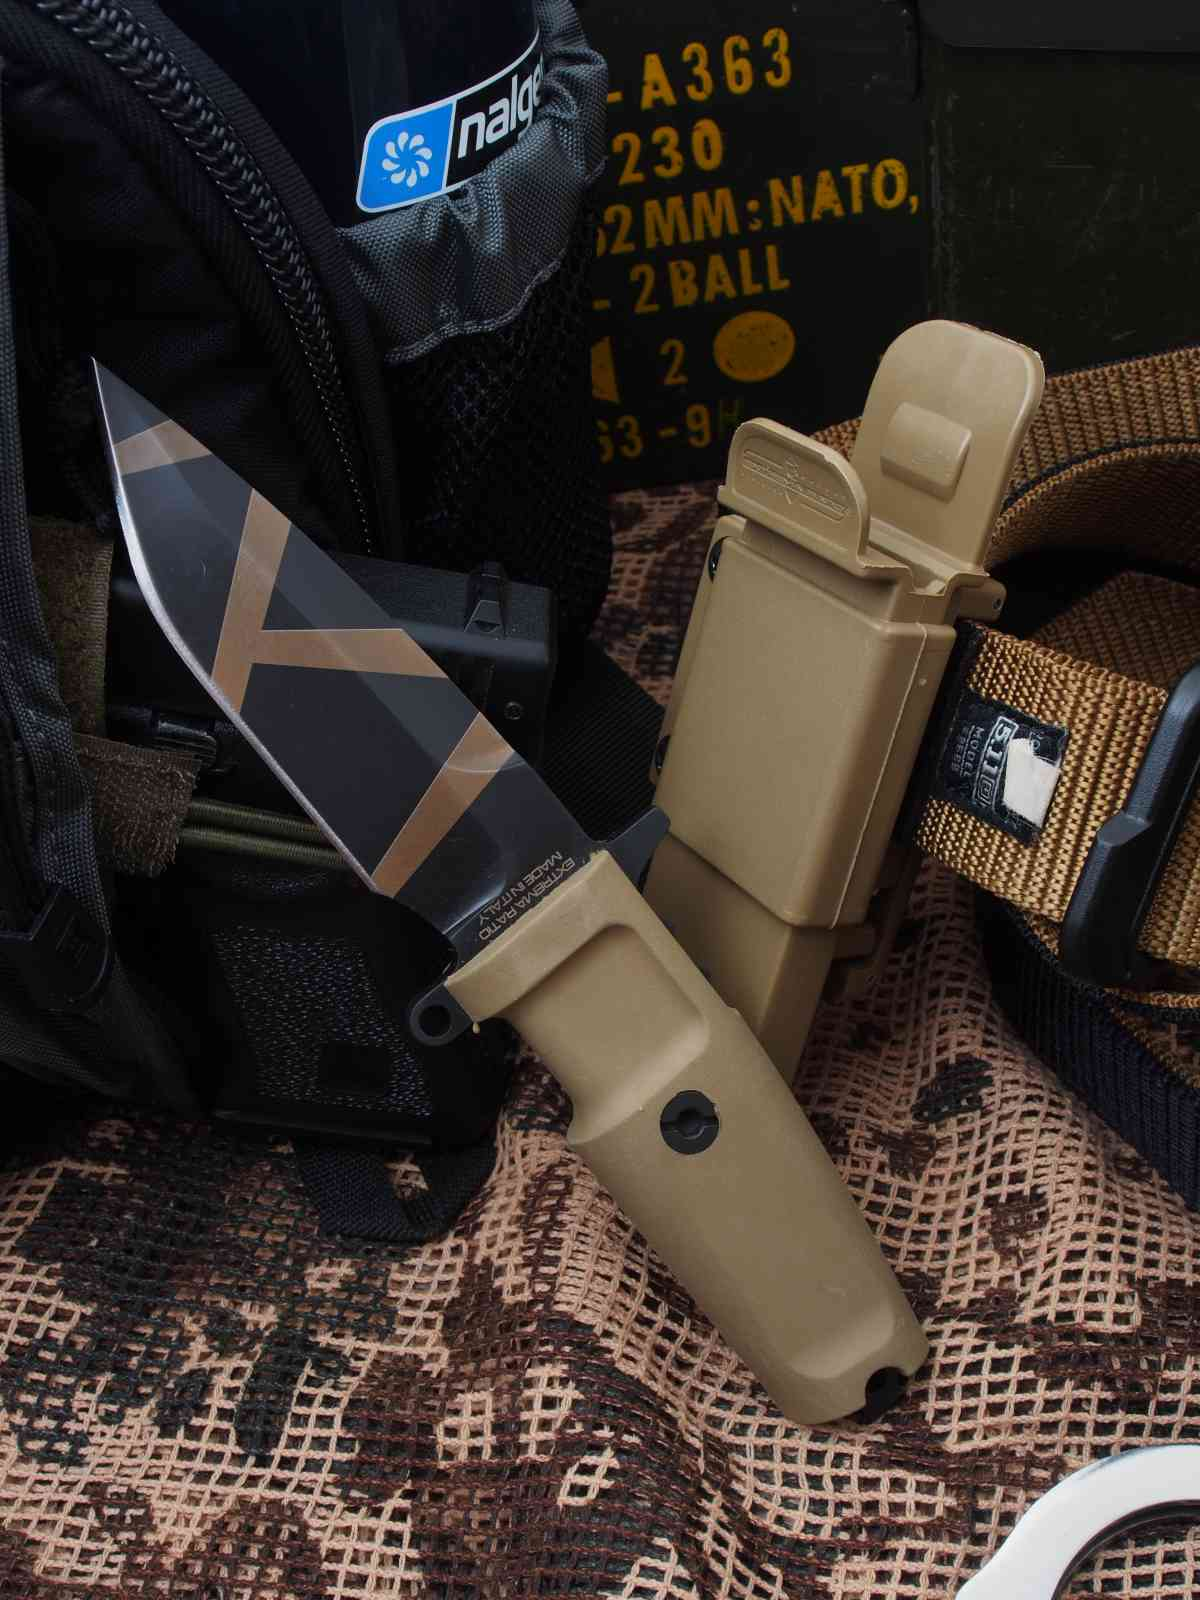 Extrema Ratio Col Moschin Compact Desert Warfare 4